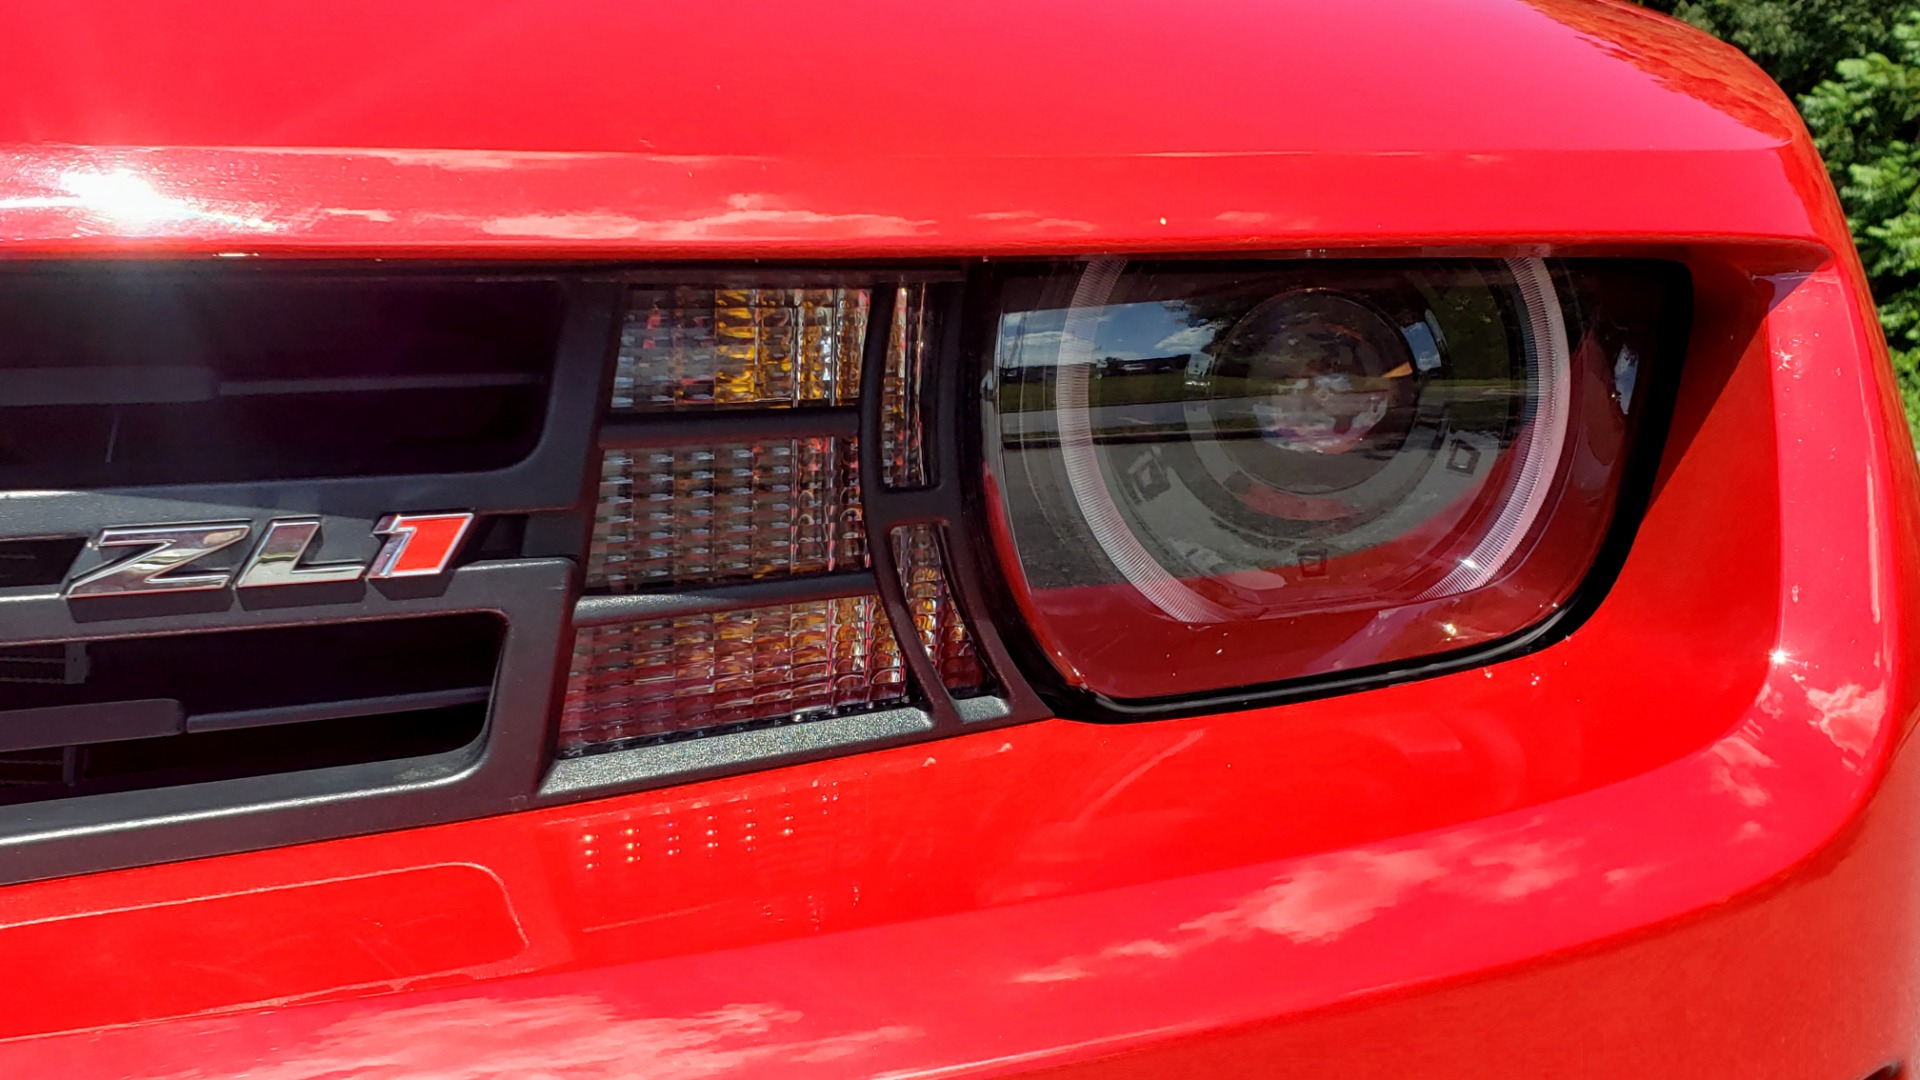 Used 2013 Chevrolet CAMARO ZL1 580HP / AUTO / NAV / BOSTON ACOUSTIC SND / REARVIEW for sale $40,995 at Formula Imports in Charlotte NC 28227 33